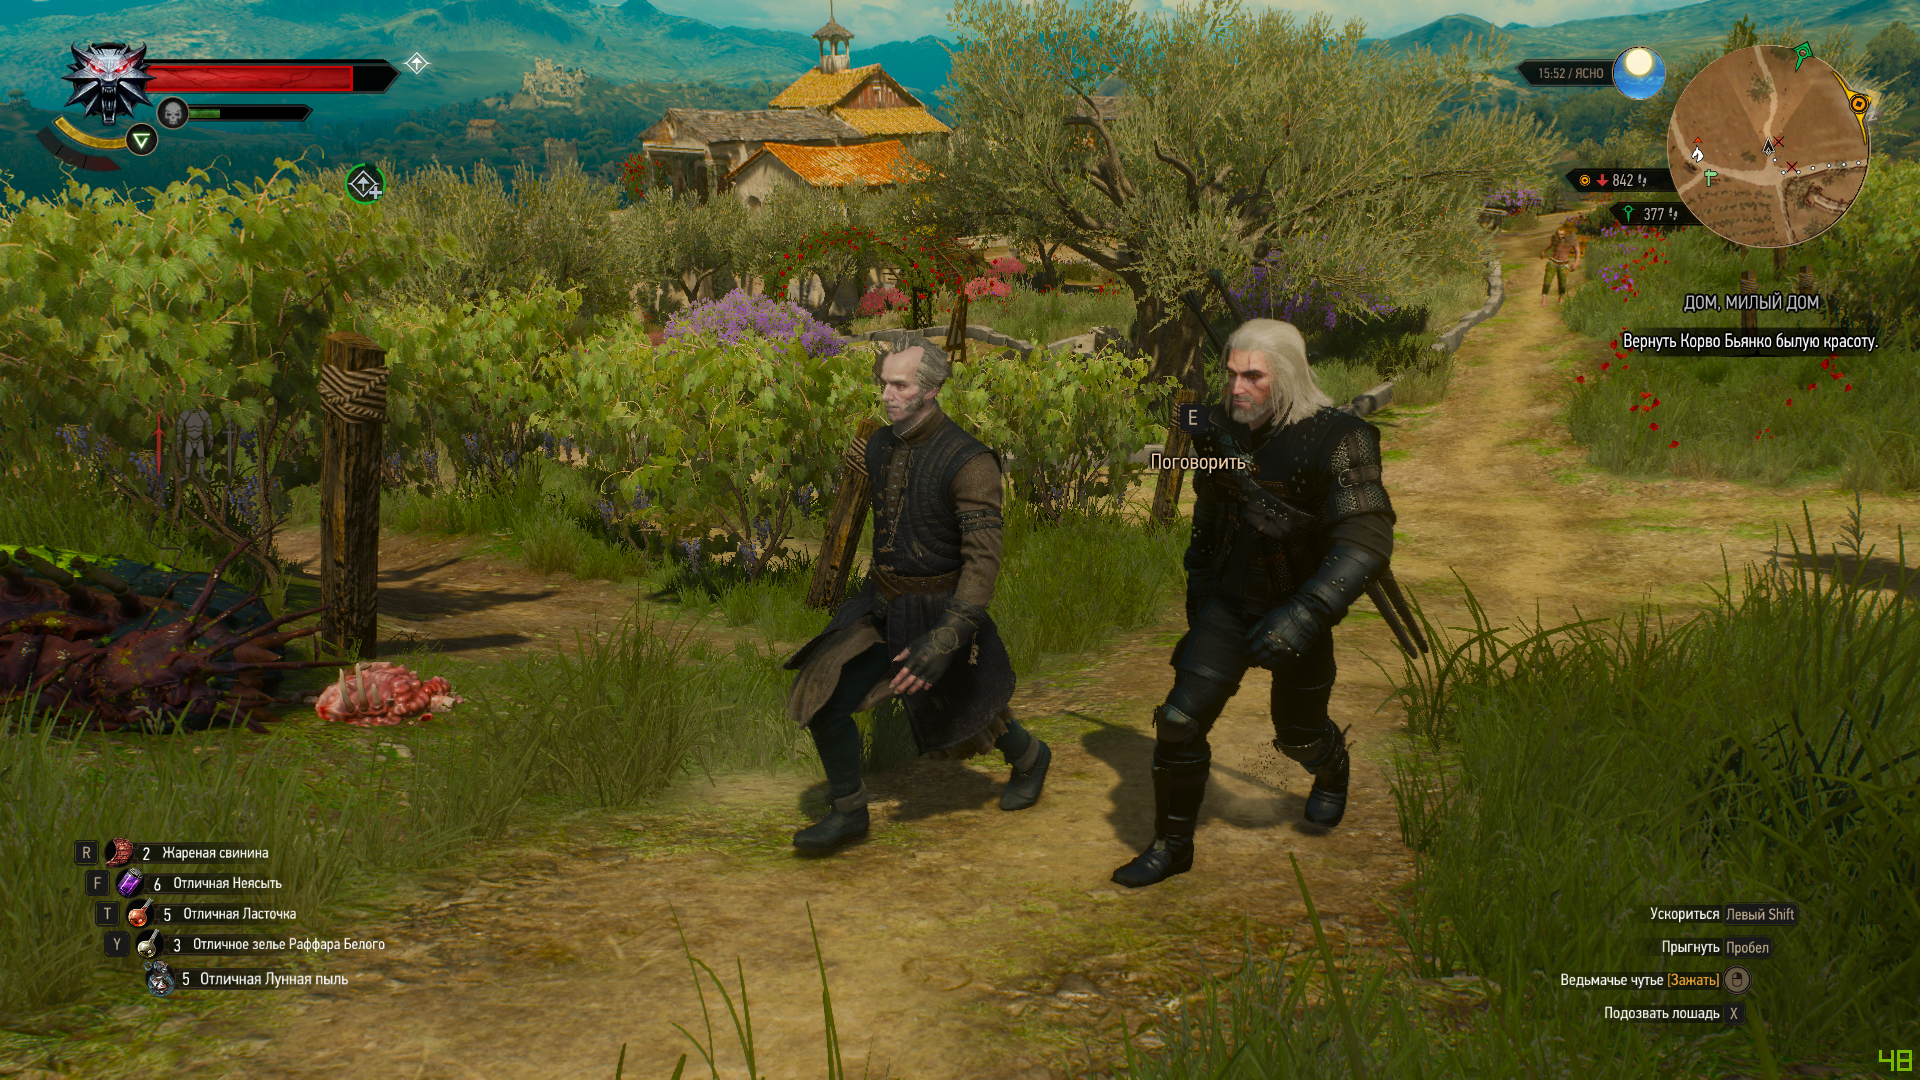 Компаньоны - Witcher 3: Wild Hunt, the